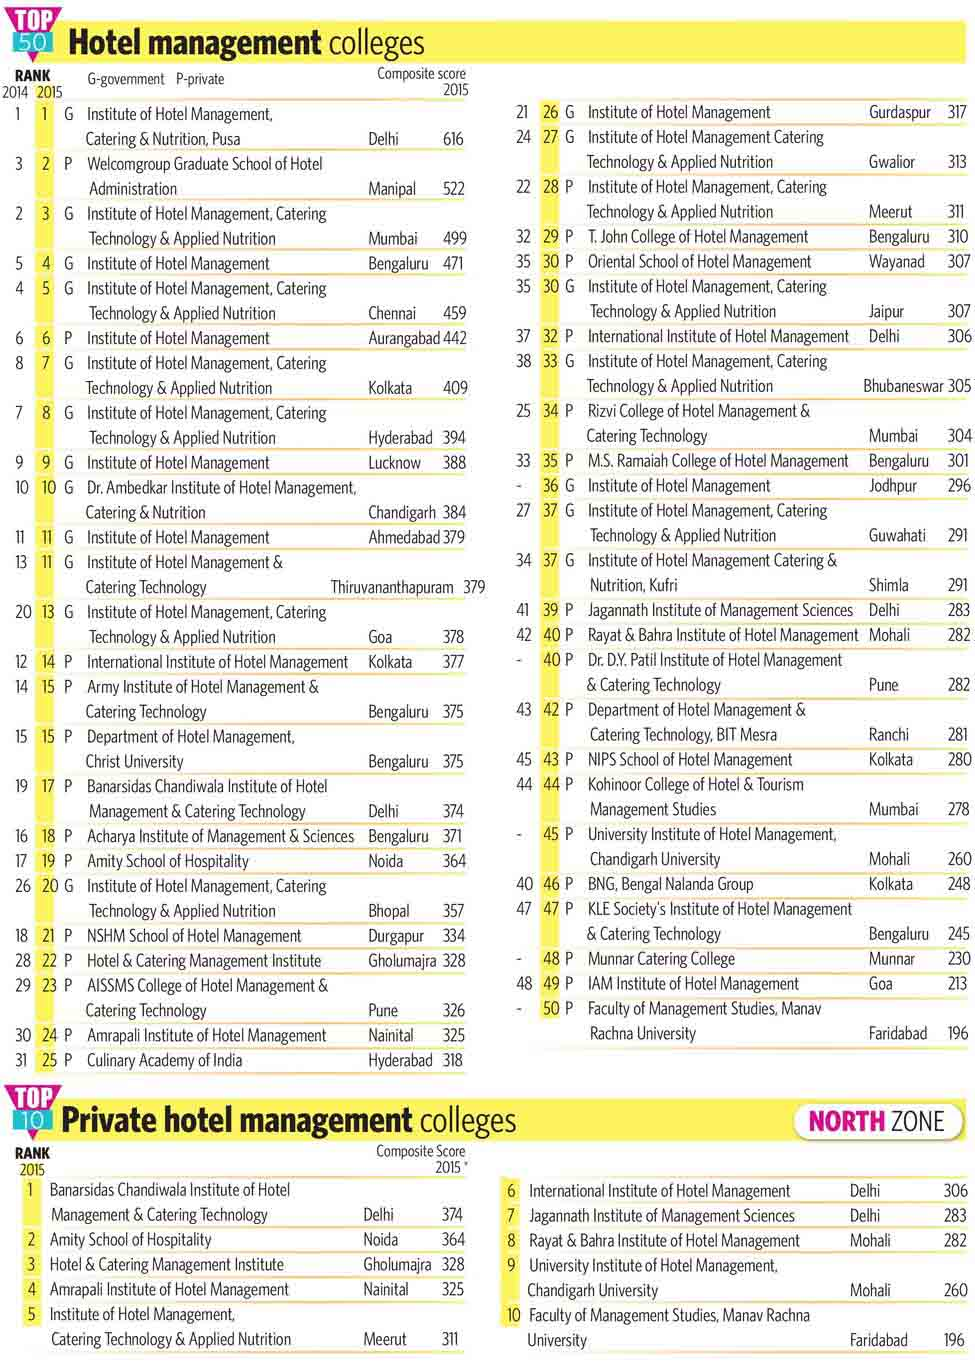 88-Hotel-management-colleges